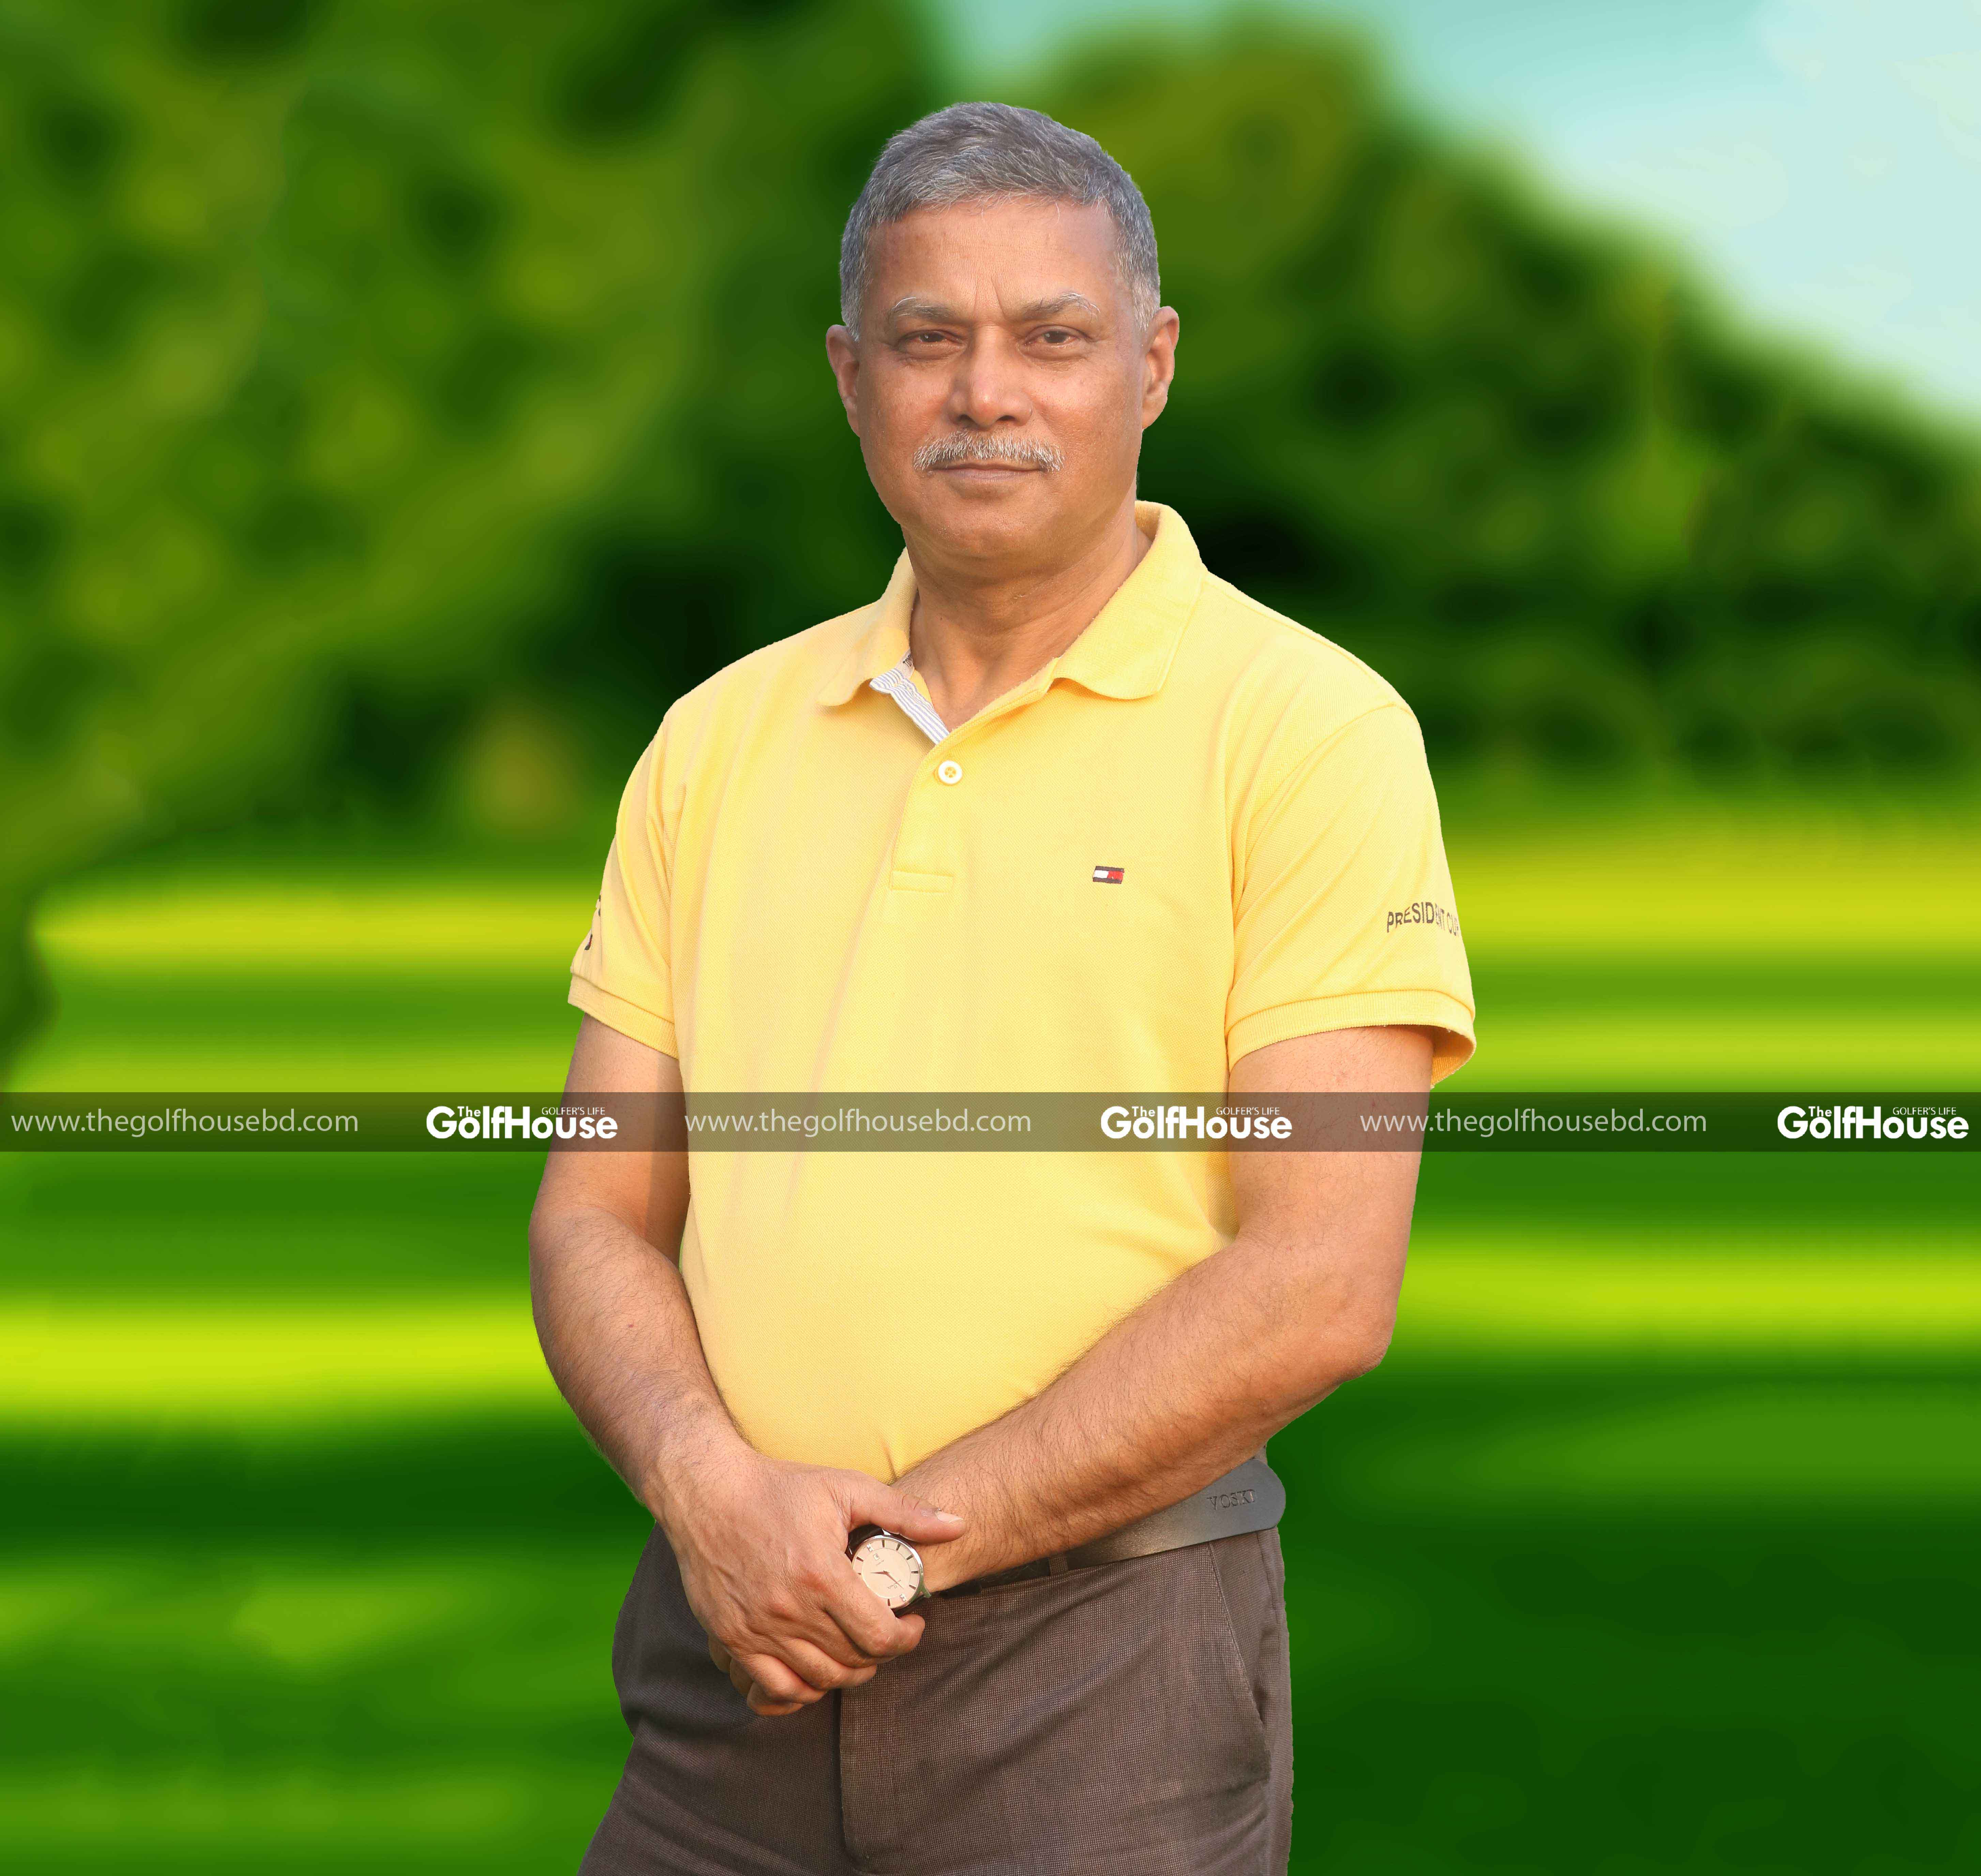 Brigadier General Shahidullah Chowdhury (retd) is the Executive Director of Abul Khair Group. As a retired army person, golf is part of his life. He is at the forefront of the company's golfing events which take place at various clubs across the country.